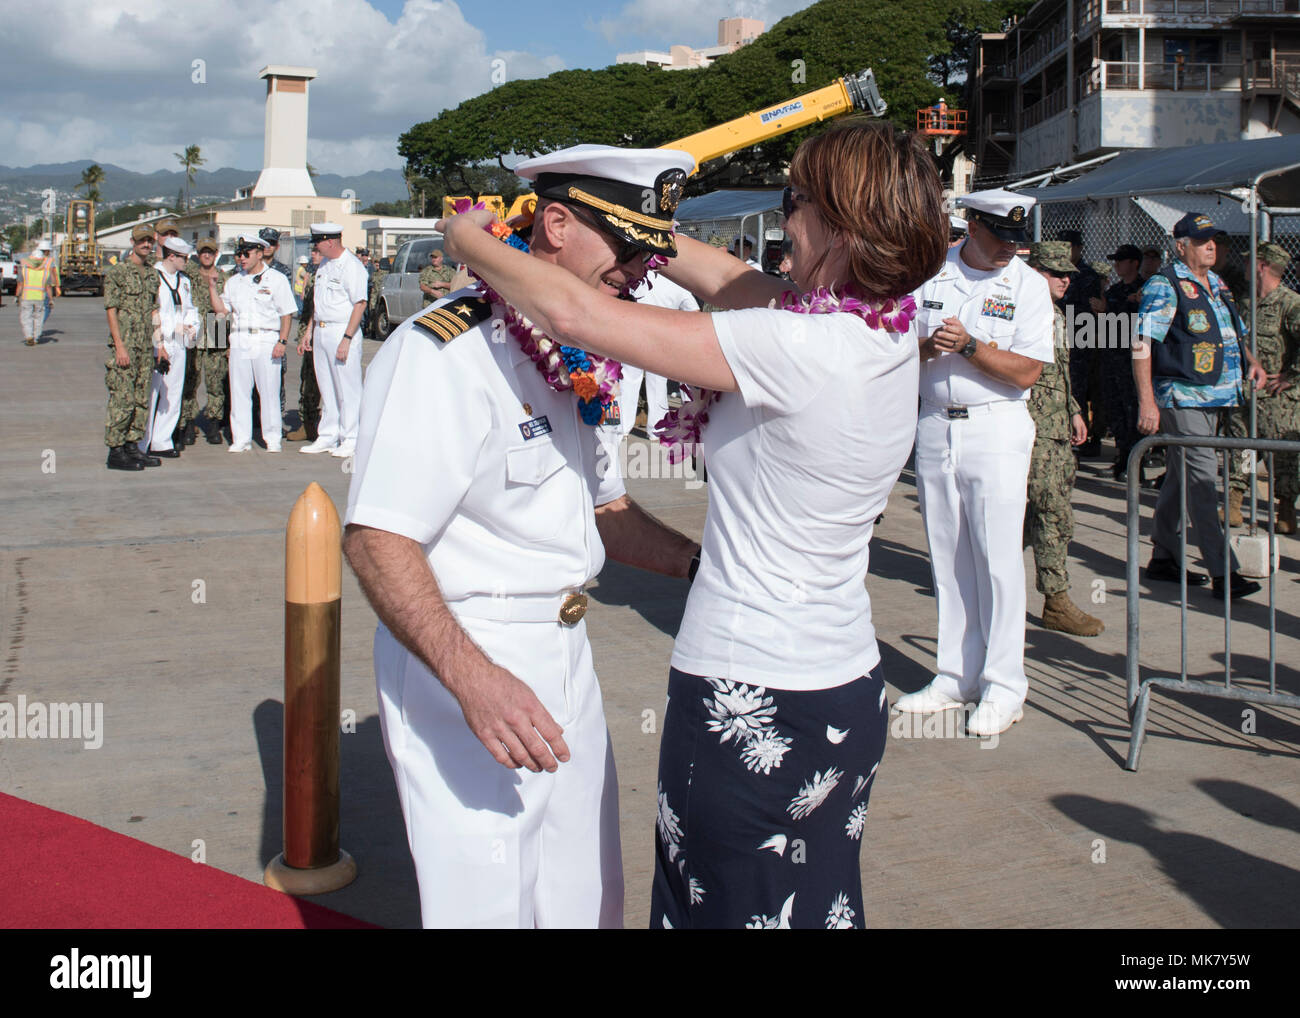 171122-N-KV911-117 PEARL HARBOR (Nov. 22, 2017) Cmdr. Neil J. Steinhagen, commanding officer of the Virginia-class attack submarine USS Illinois (SSN 786), is greeted by his wife on the pier at Joint Base Pearl Harbor-Hickam after arriving from a change of homeport from Groton, Connecticut, Nov. 22. USS Illinois is the 13th Virginia-class nuclear submarine and the 5th Virginia-class submarine homeported in Pearl Harbor. (U.S. Navy Photo by Mass Communication Specialist 2nd Class Shaun Griffin/Released) - Stock Image